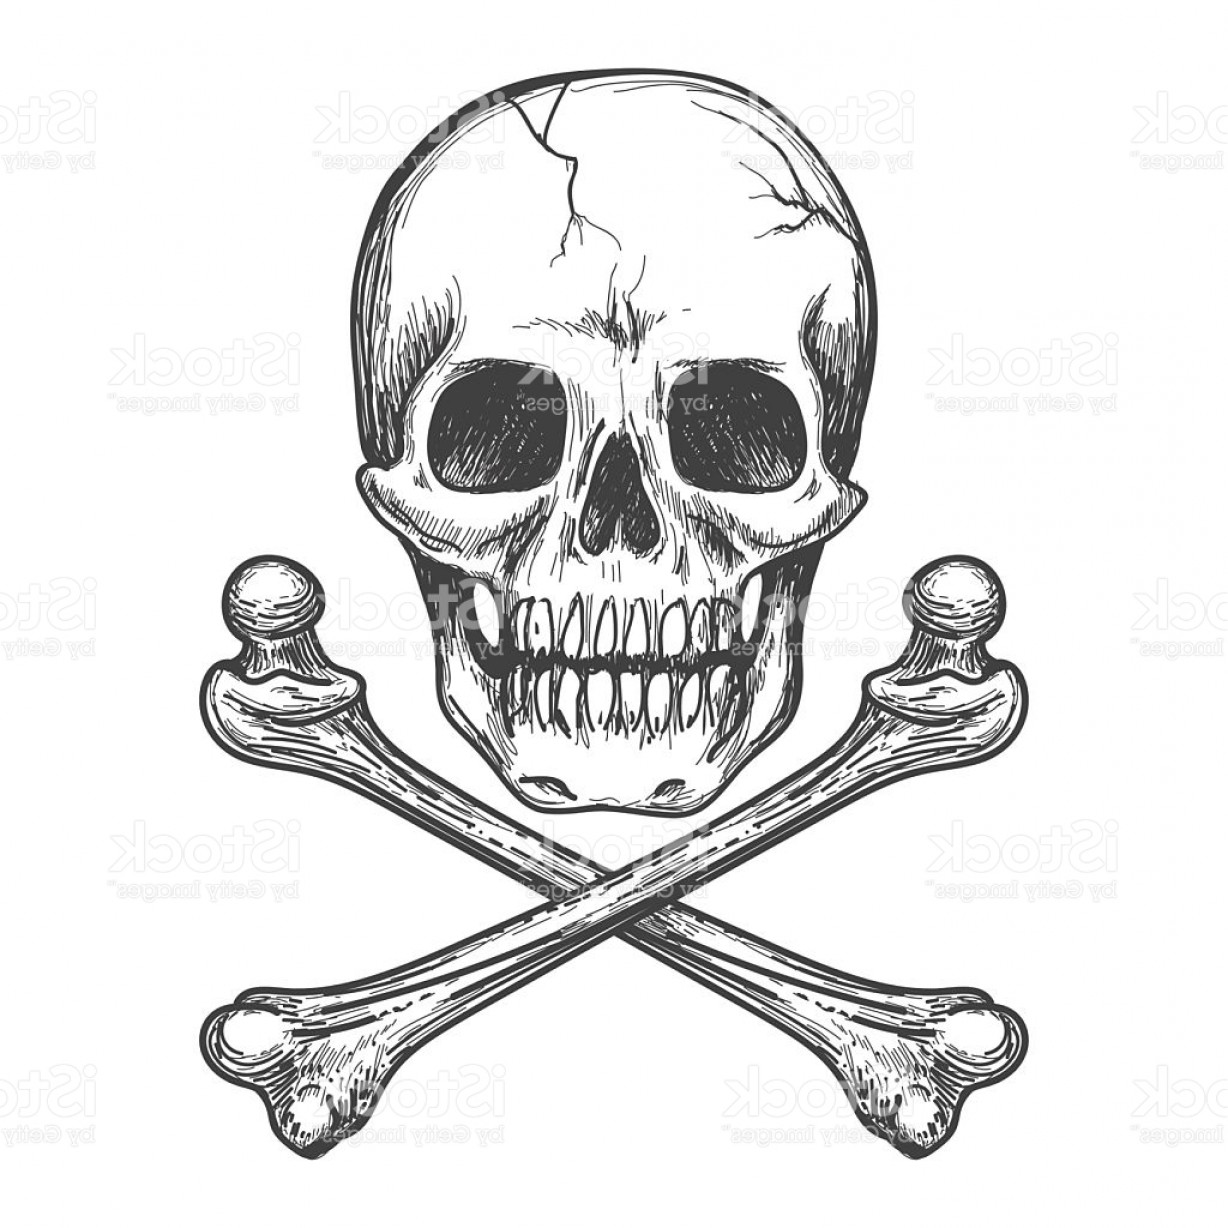 Skull ND Crossbones Vector: Skull And Crossbones Vector Illustration Gm